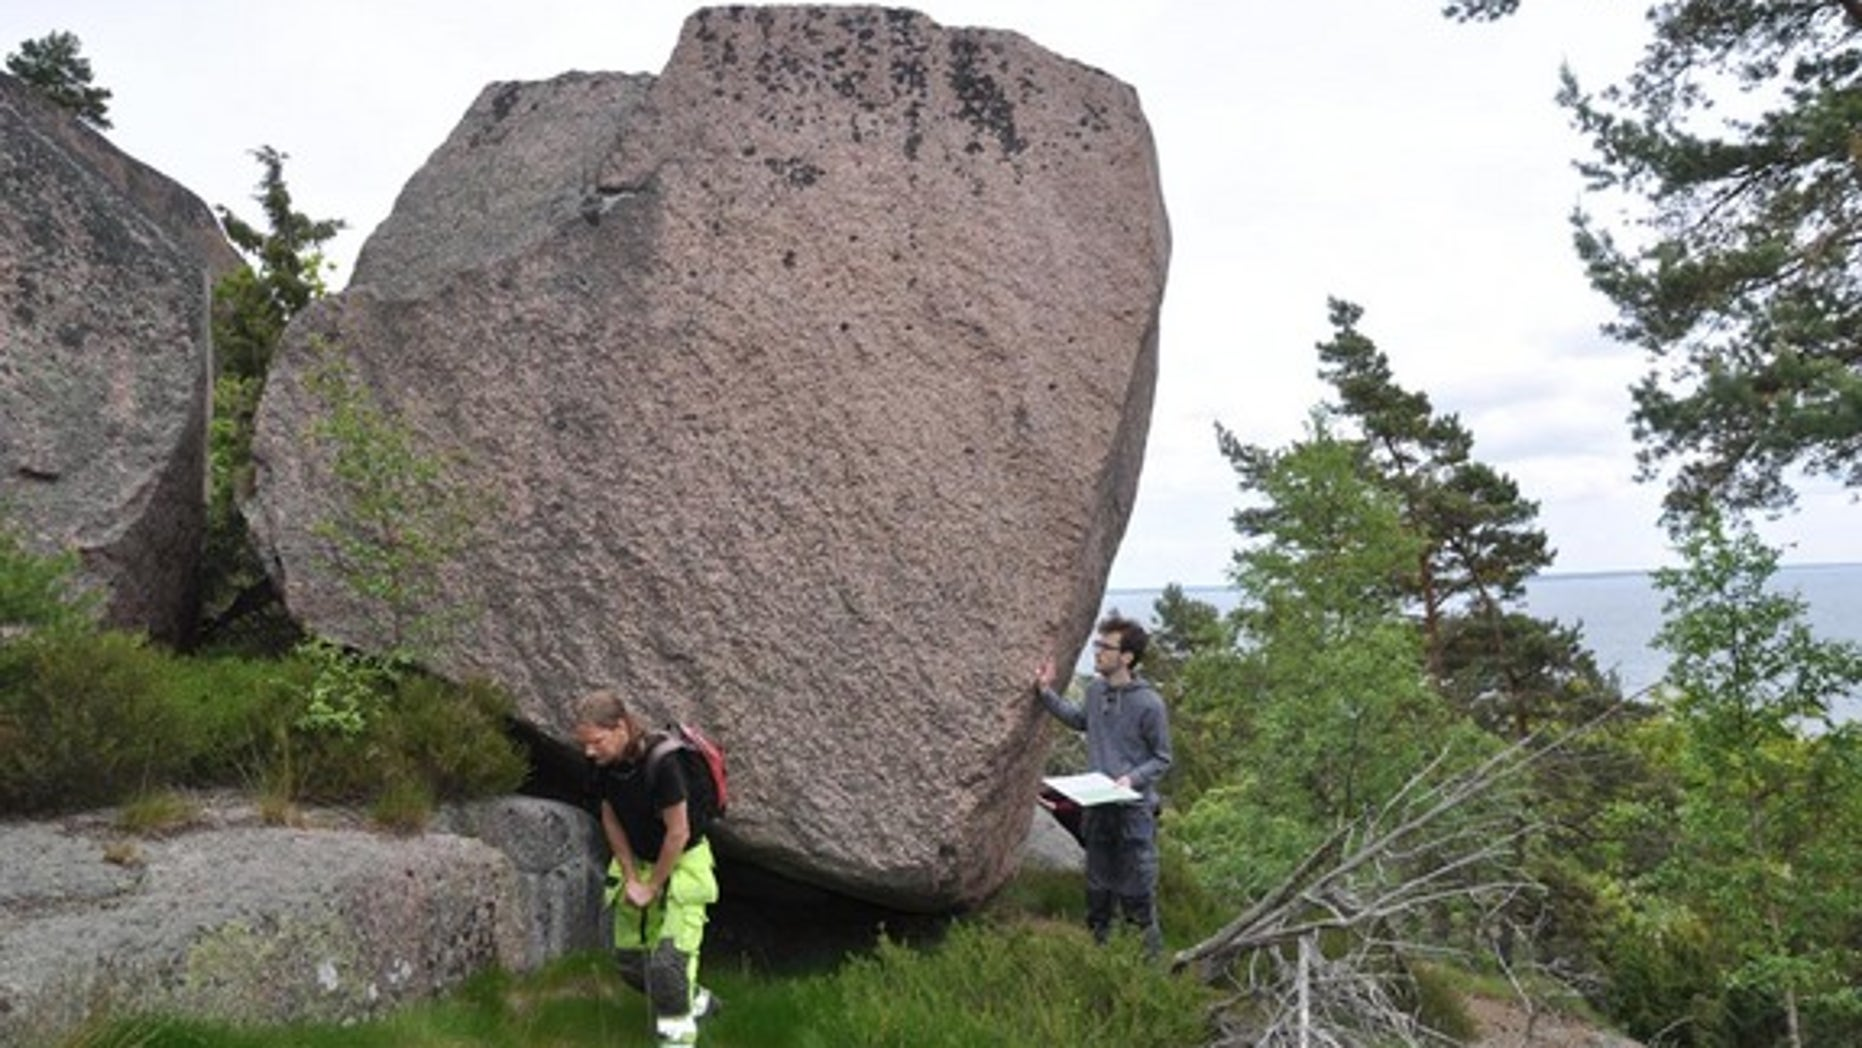 Archaeologists work on the island off Sweden where they discovered evidence of Stone Age rituals. The island has long been linked with tales of witchcraft, supernatural powers and curses.